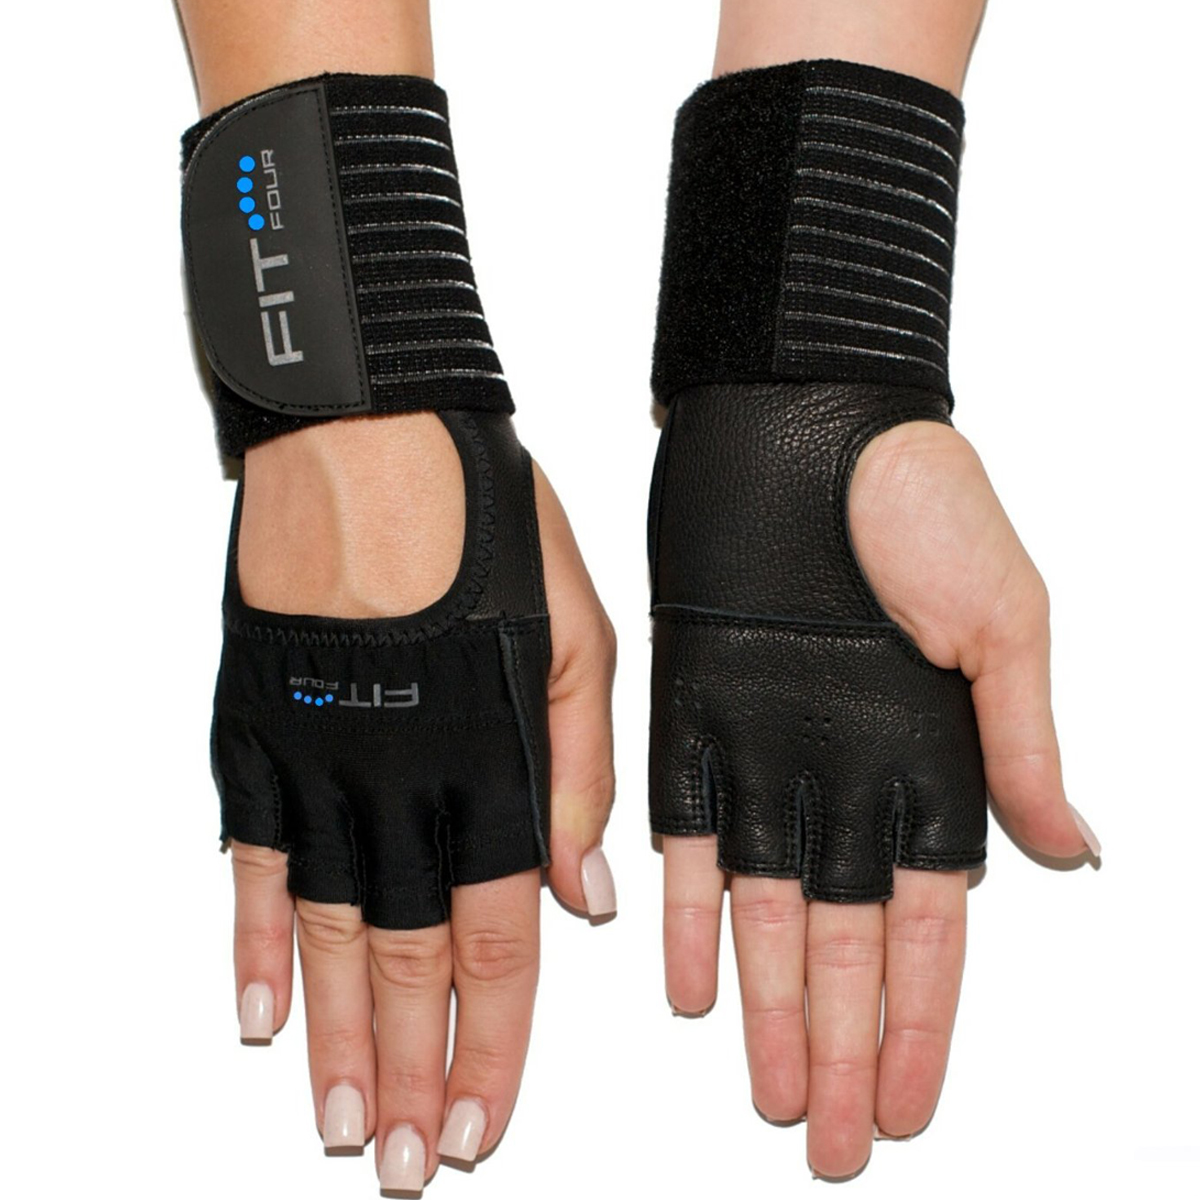 Fit Four The Spartan Grip Leather Fitness Weight Lifting Gloves - XS - Black